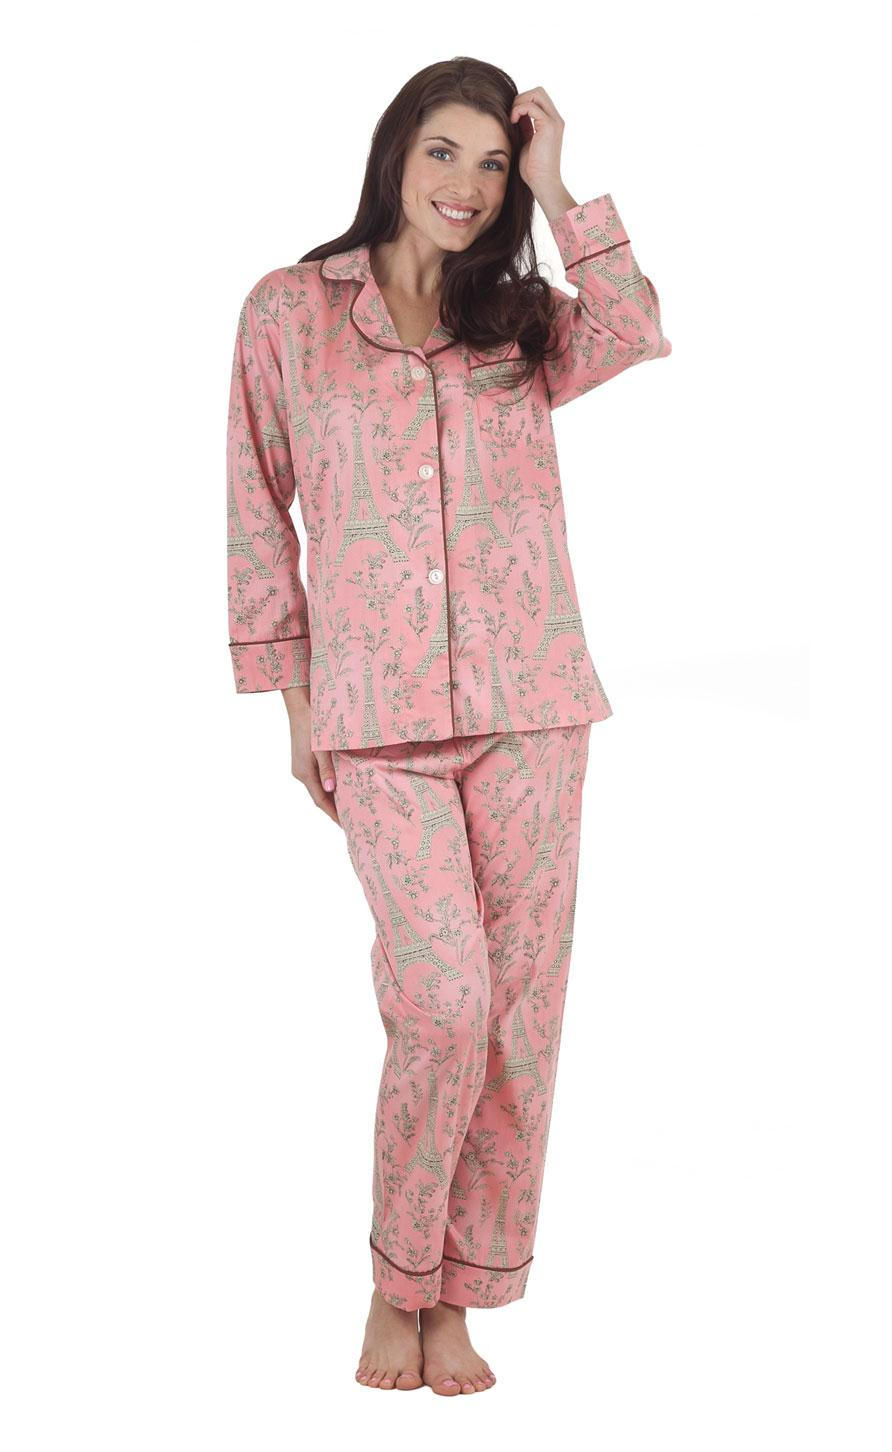 ladies night dress pyjamas - photo #3